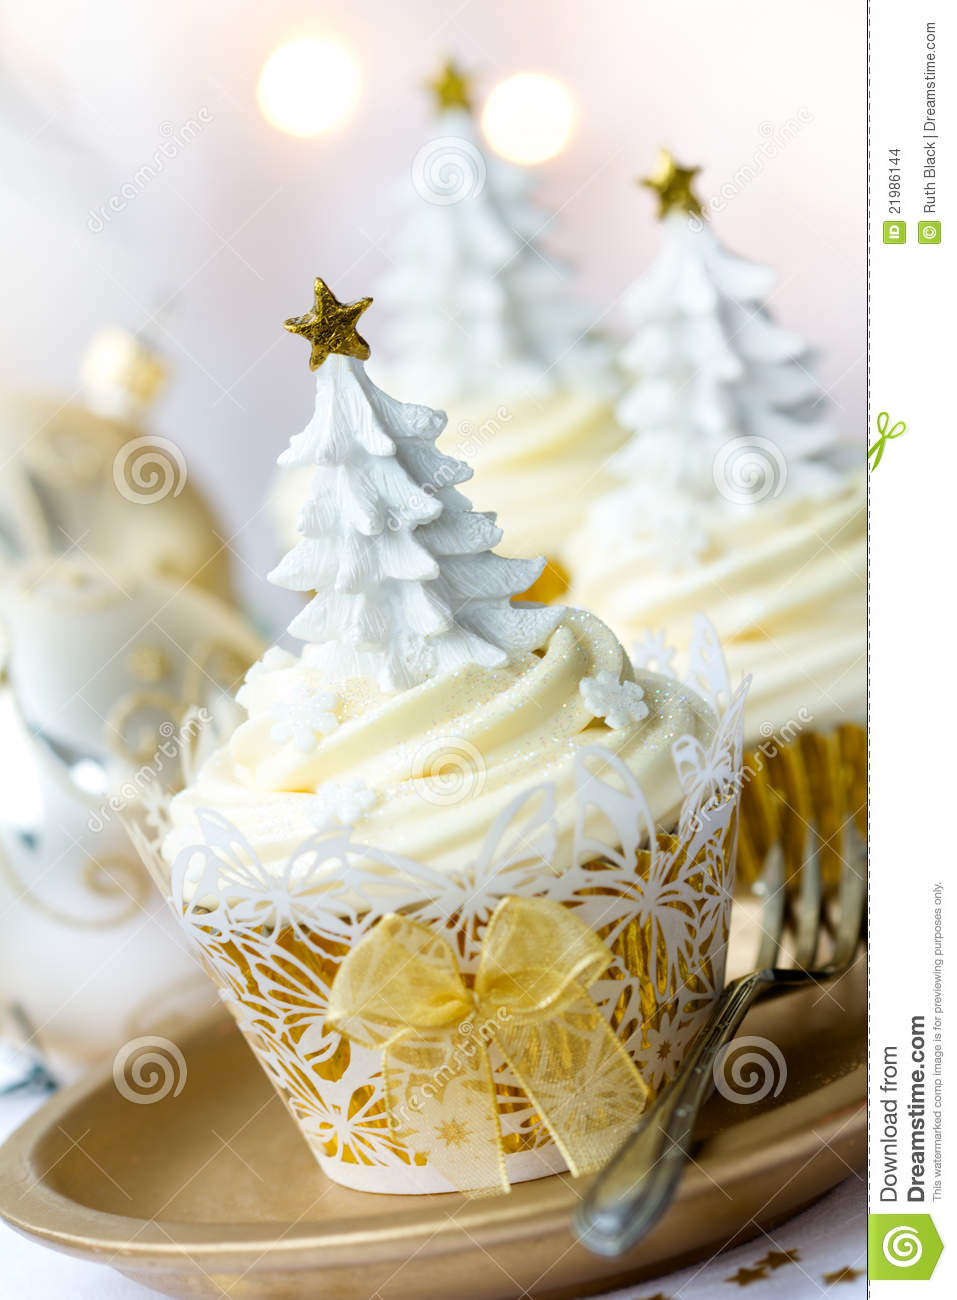 Download Christmas cupcakes stock photo. Image of cake, icing - 21986144